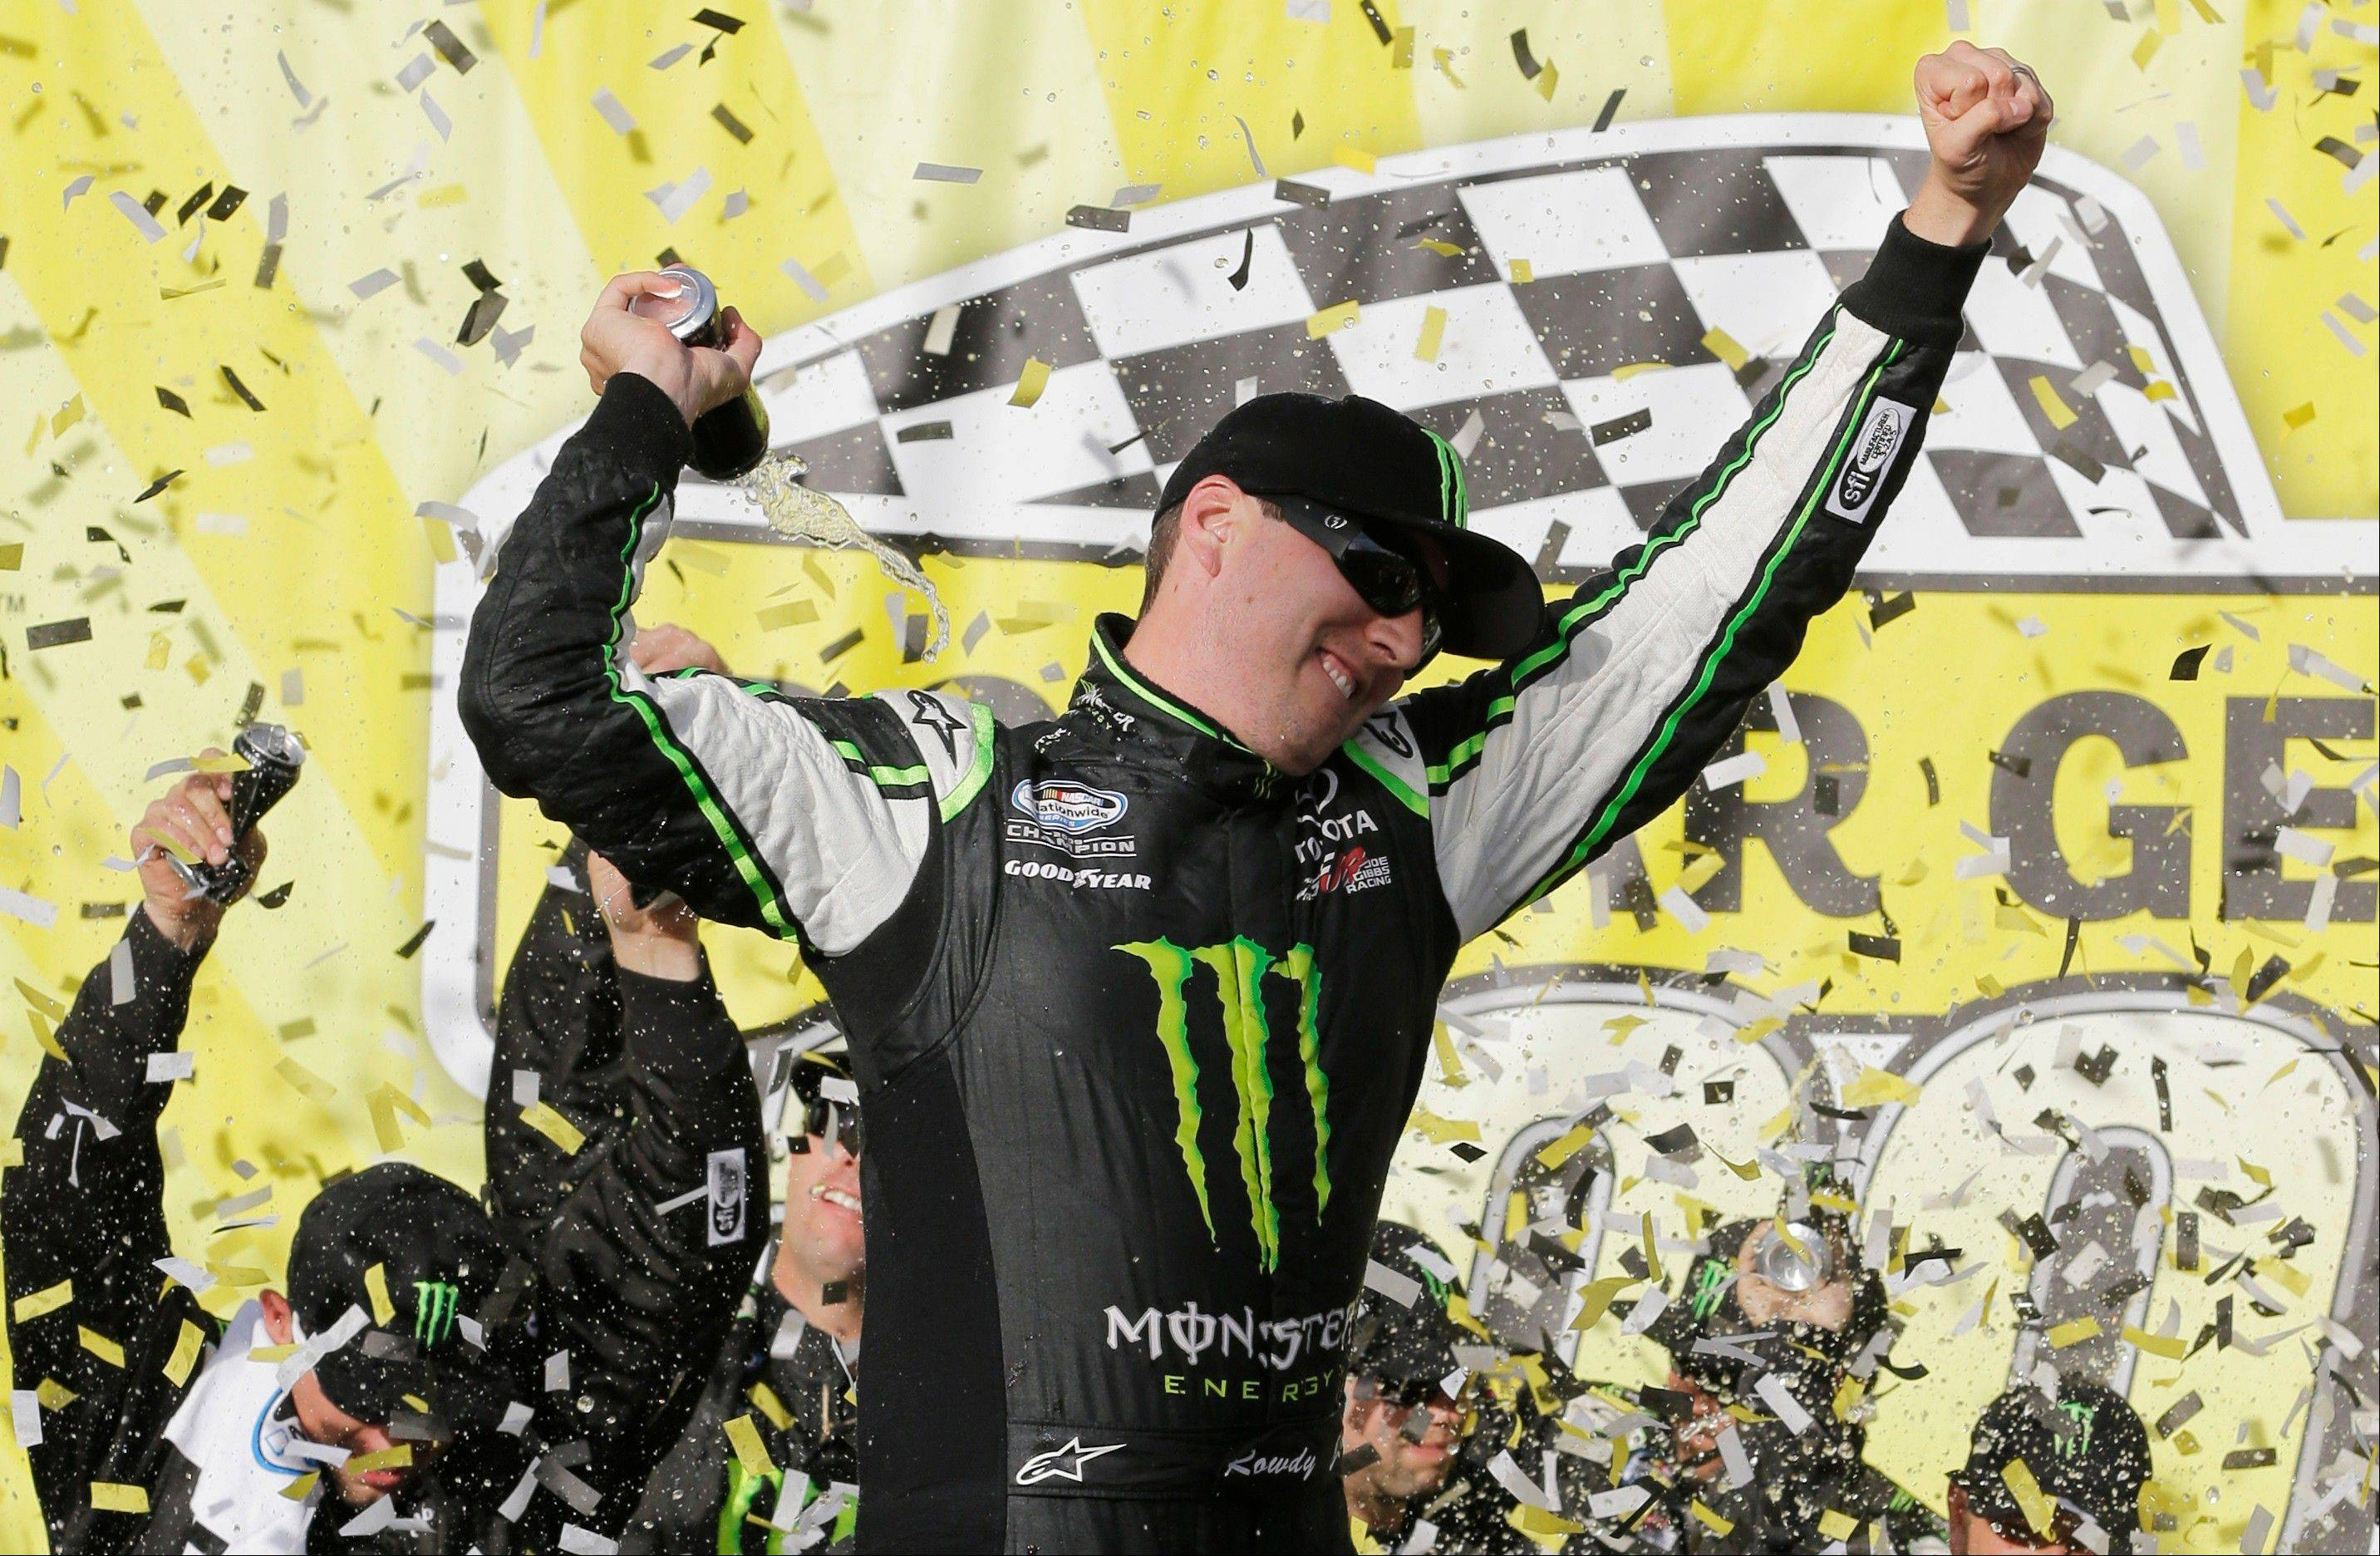 Kyle Busch celebrates in Victory Lane after winning the NASCAR Nationwide Series auto race at Chicagoland Speedway in Joliet, Ill., Saturday, Sept. 14, 2013.